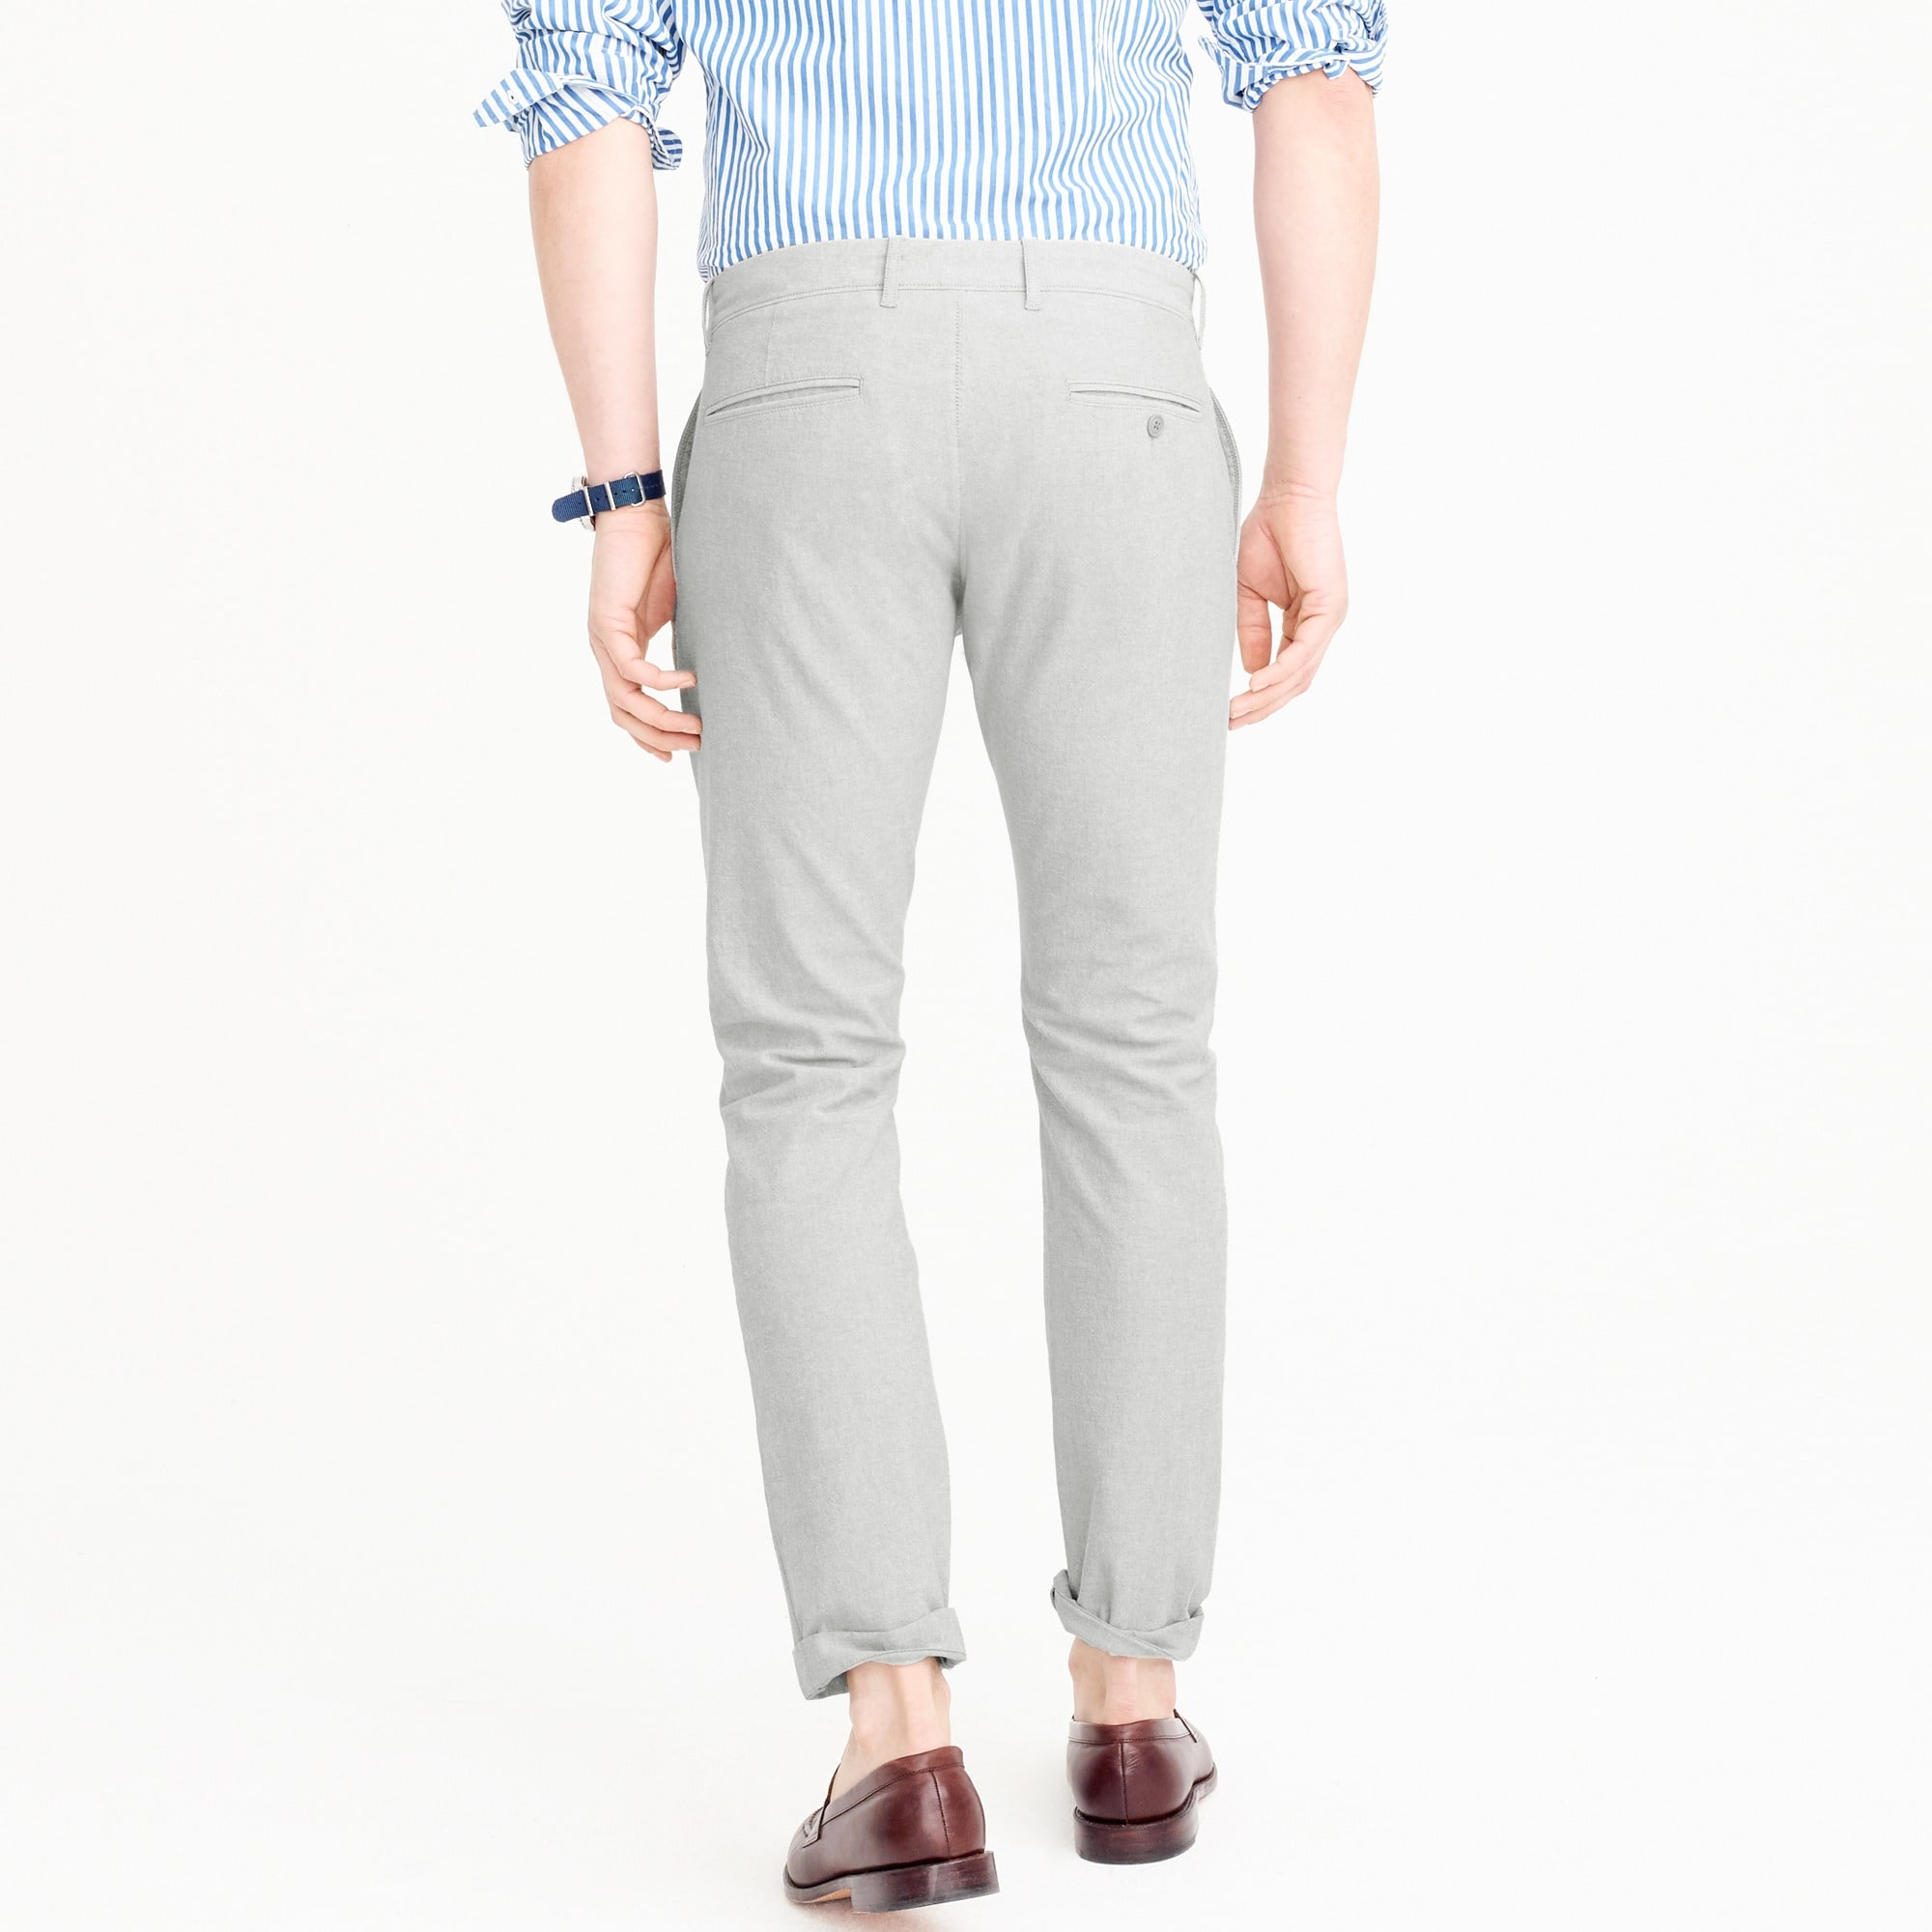 484 Slim-fit pant in stretch chambray